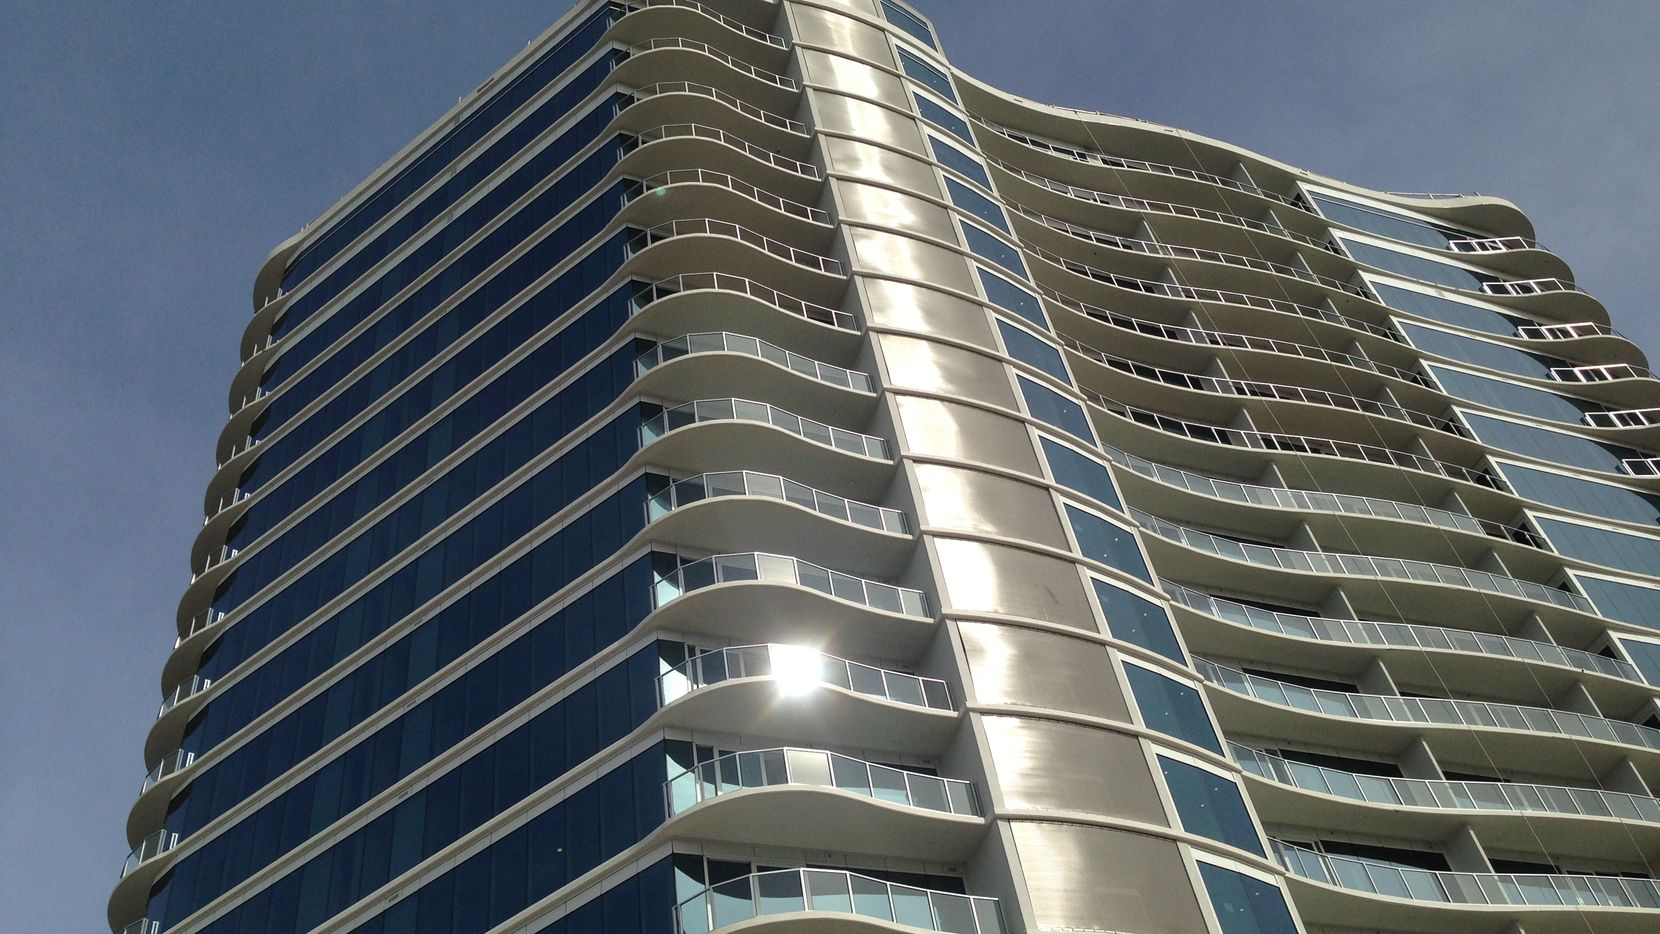 The 20-story One Uptown residential tower is at McKinney Avenue and Routh Street.